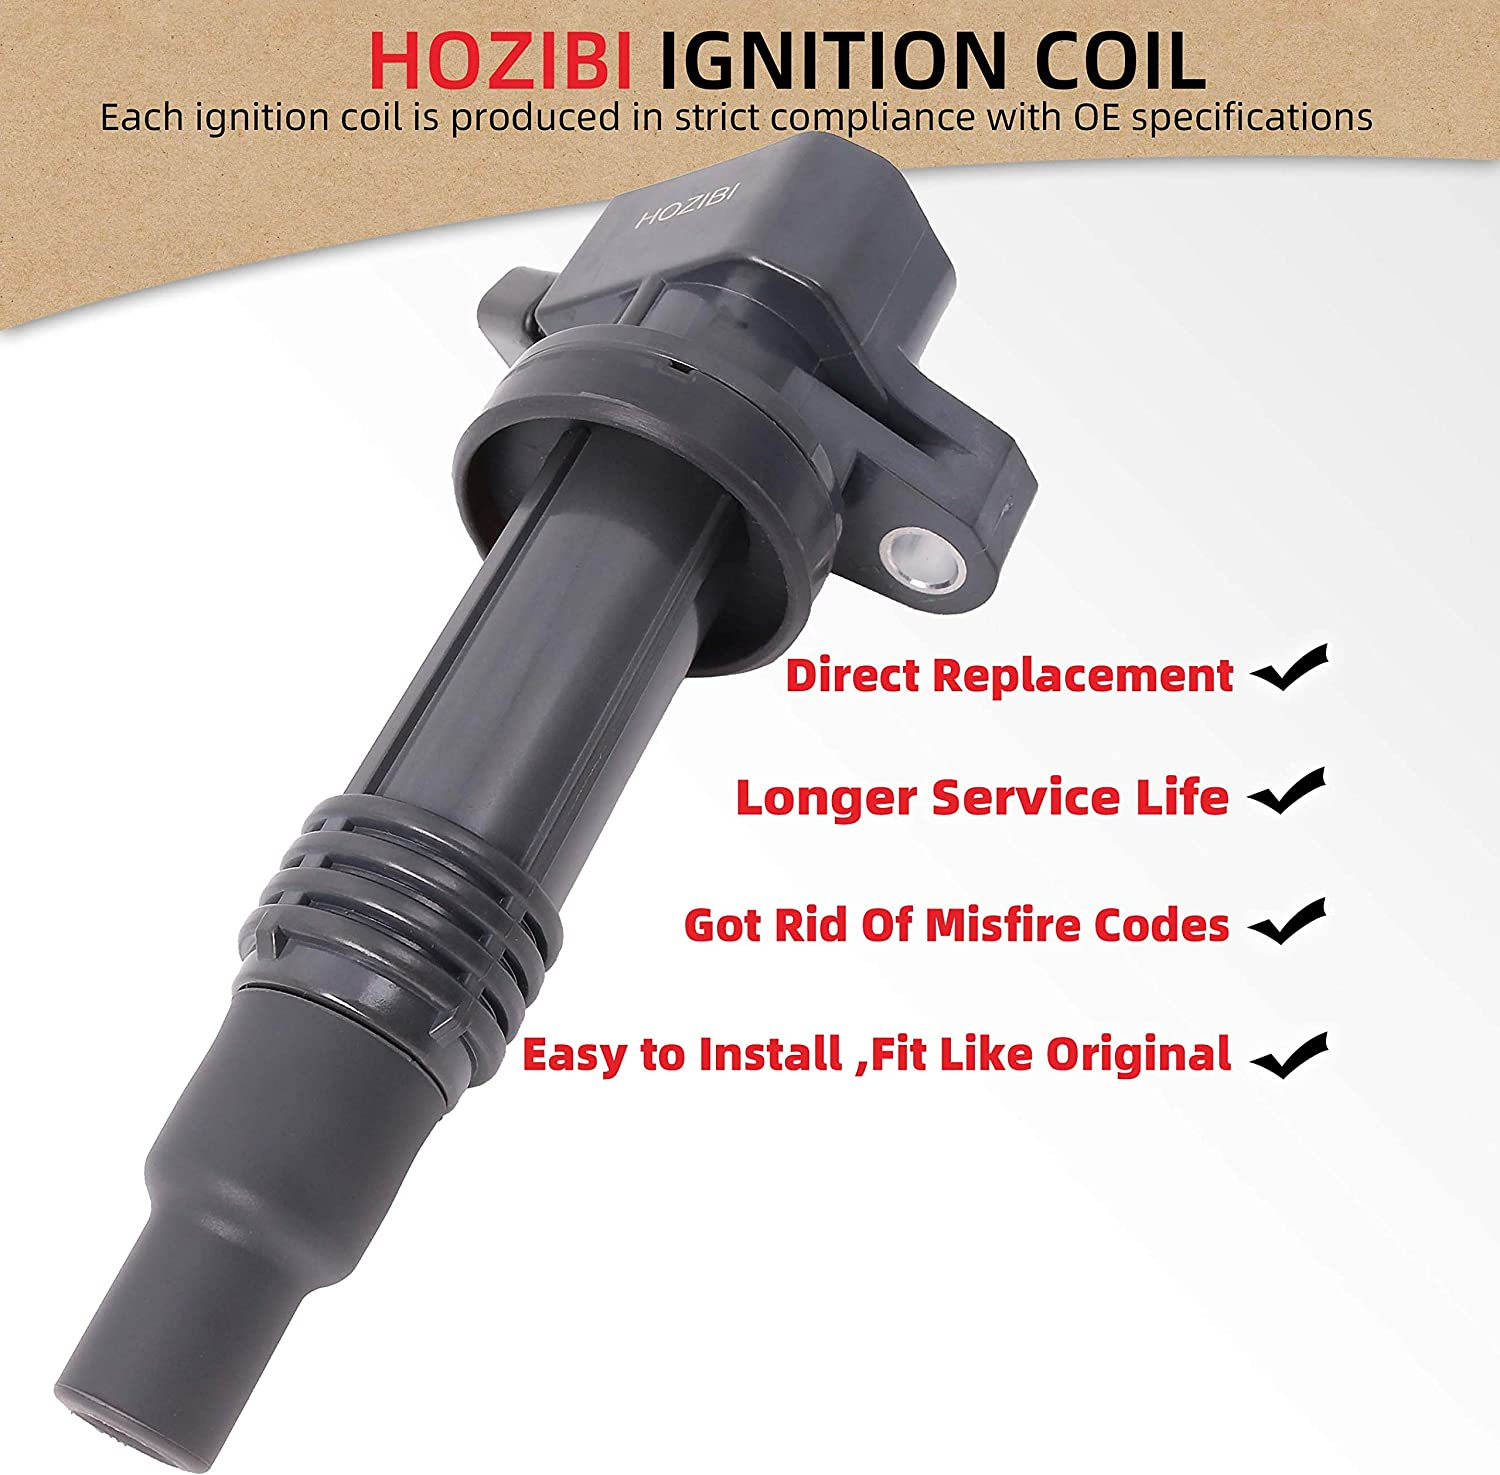 HOZIBI 90919-02236 9091902236 1PCS Ignition Coil Compatible with ...